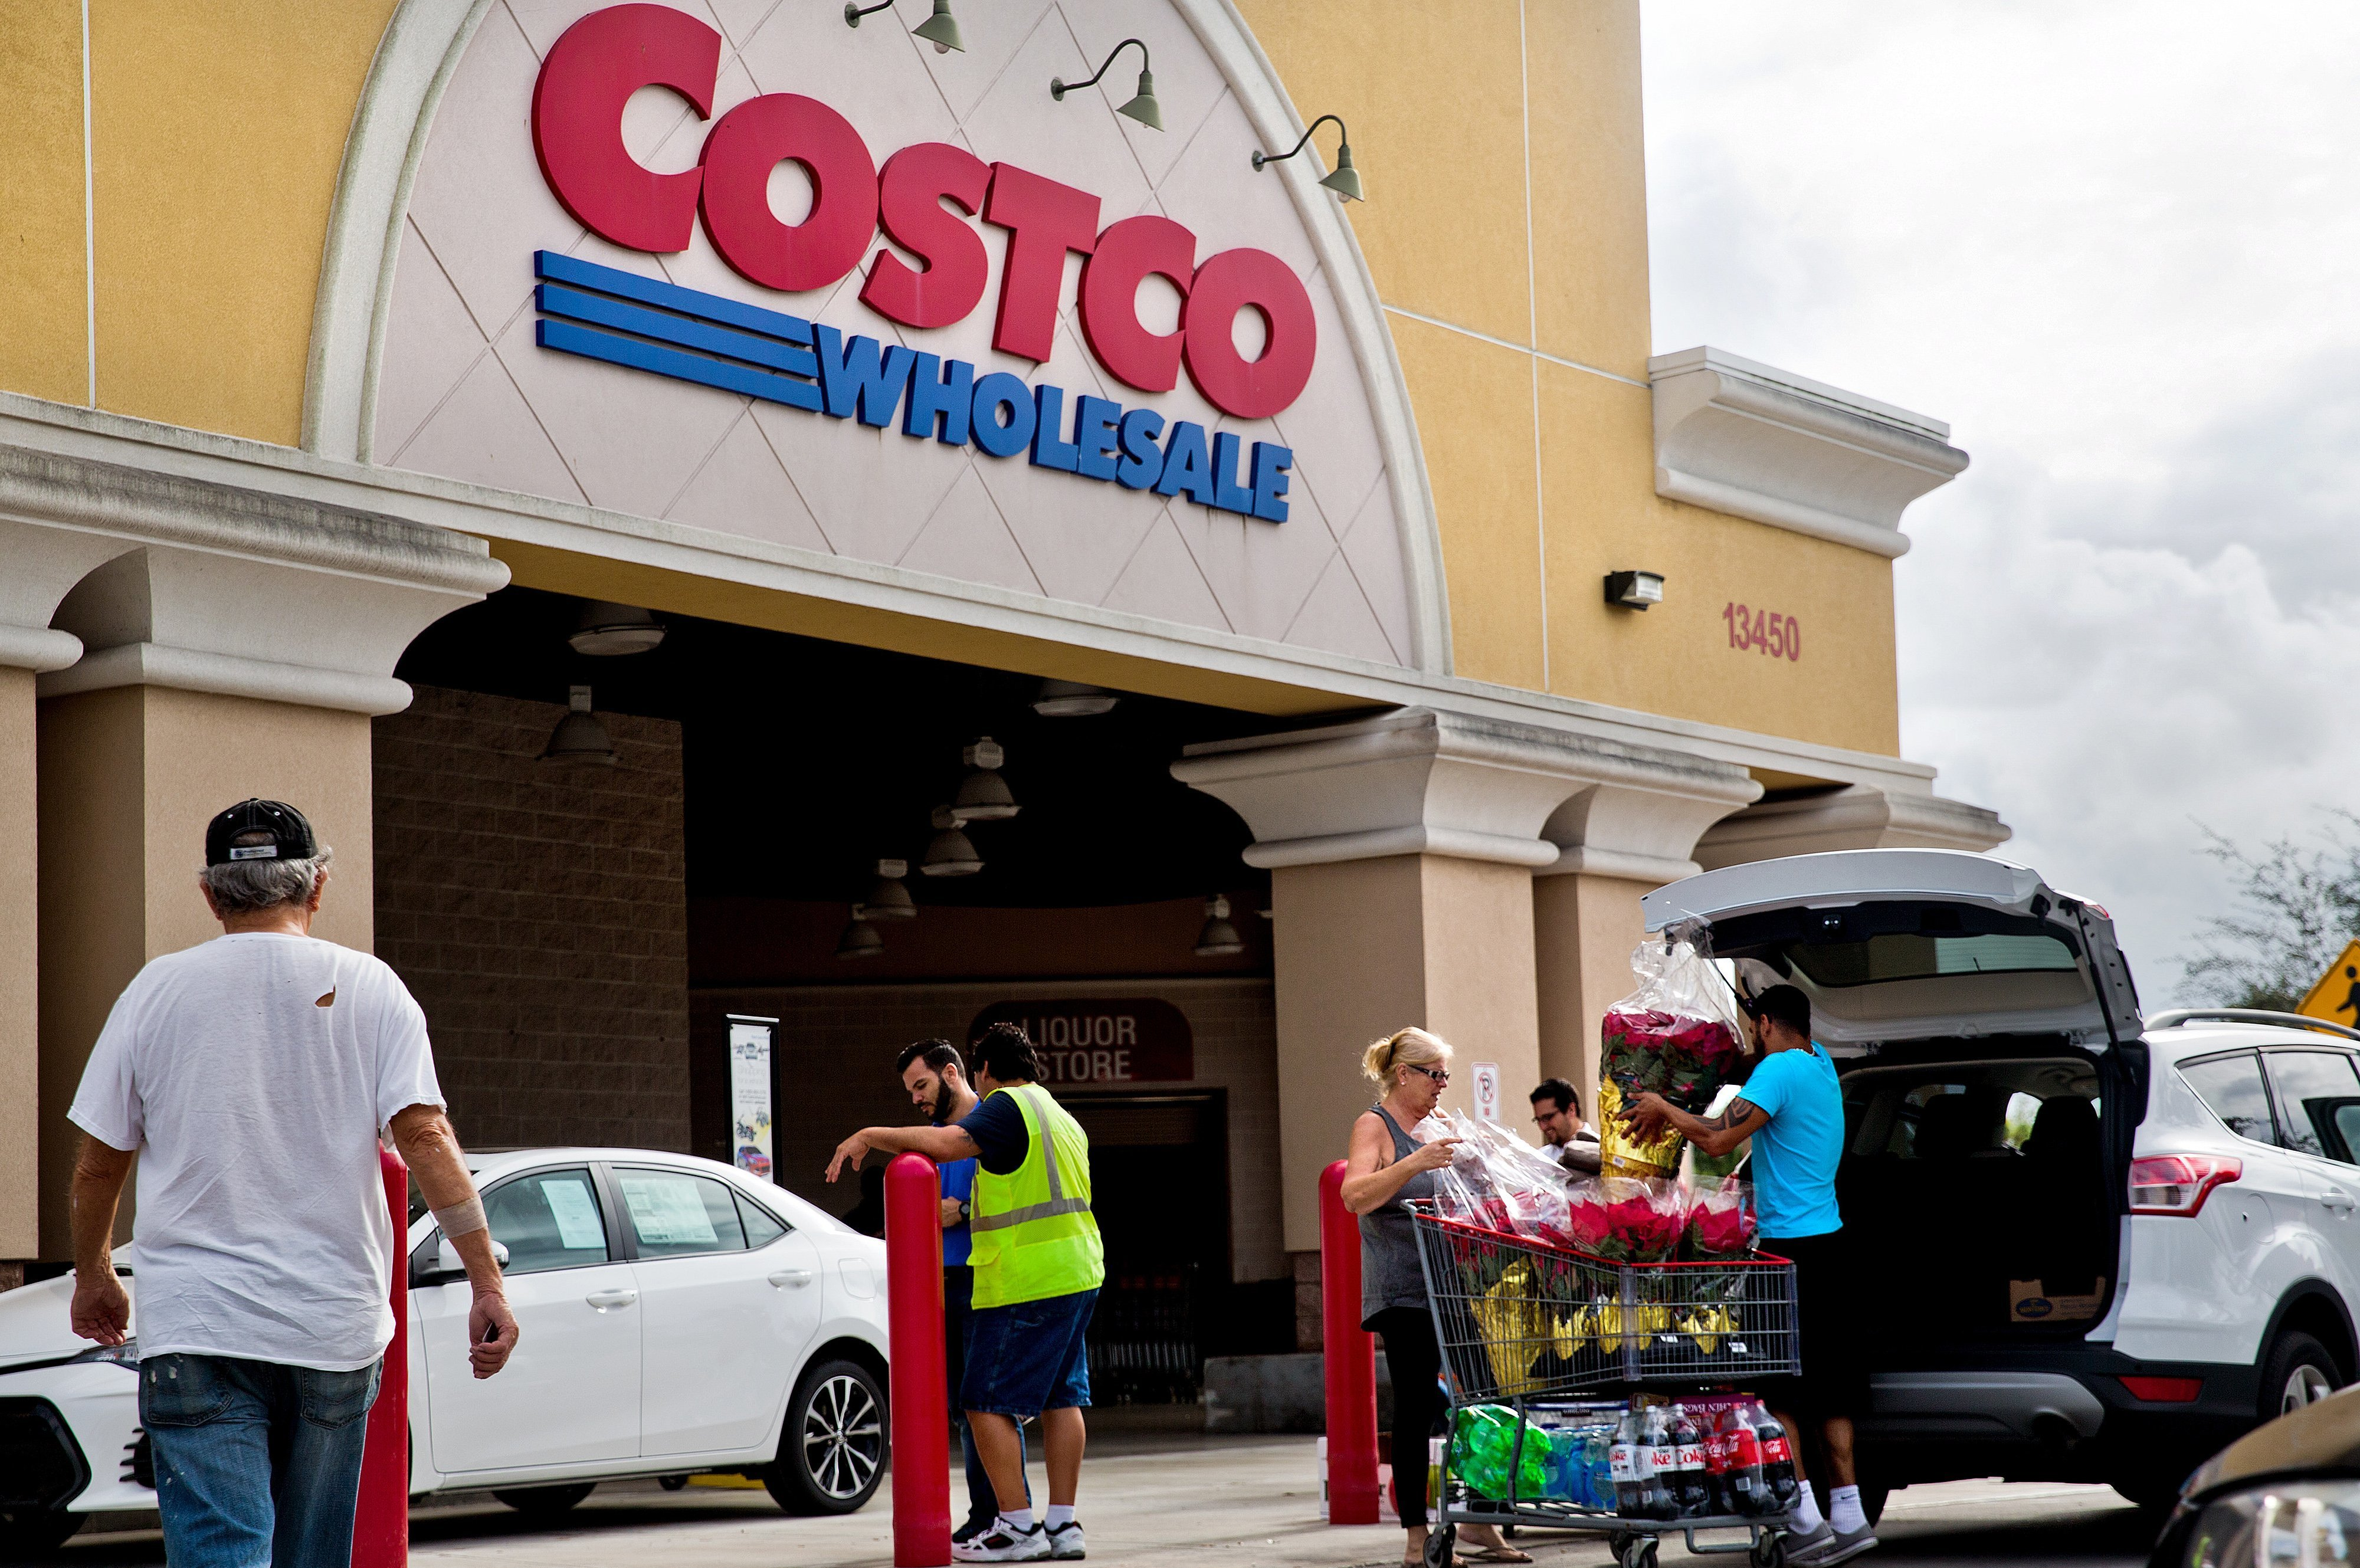 Travel System Costco